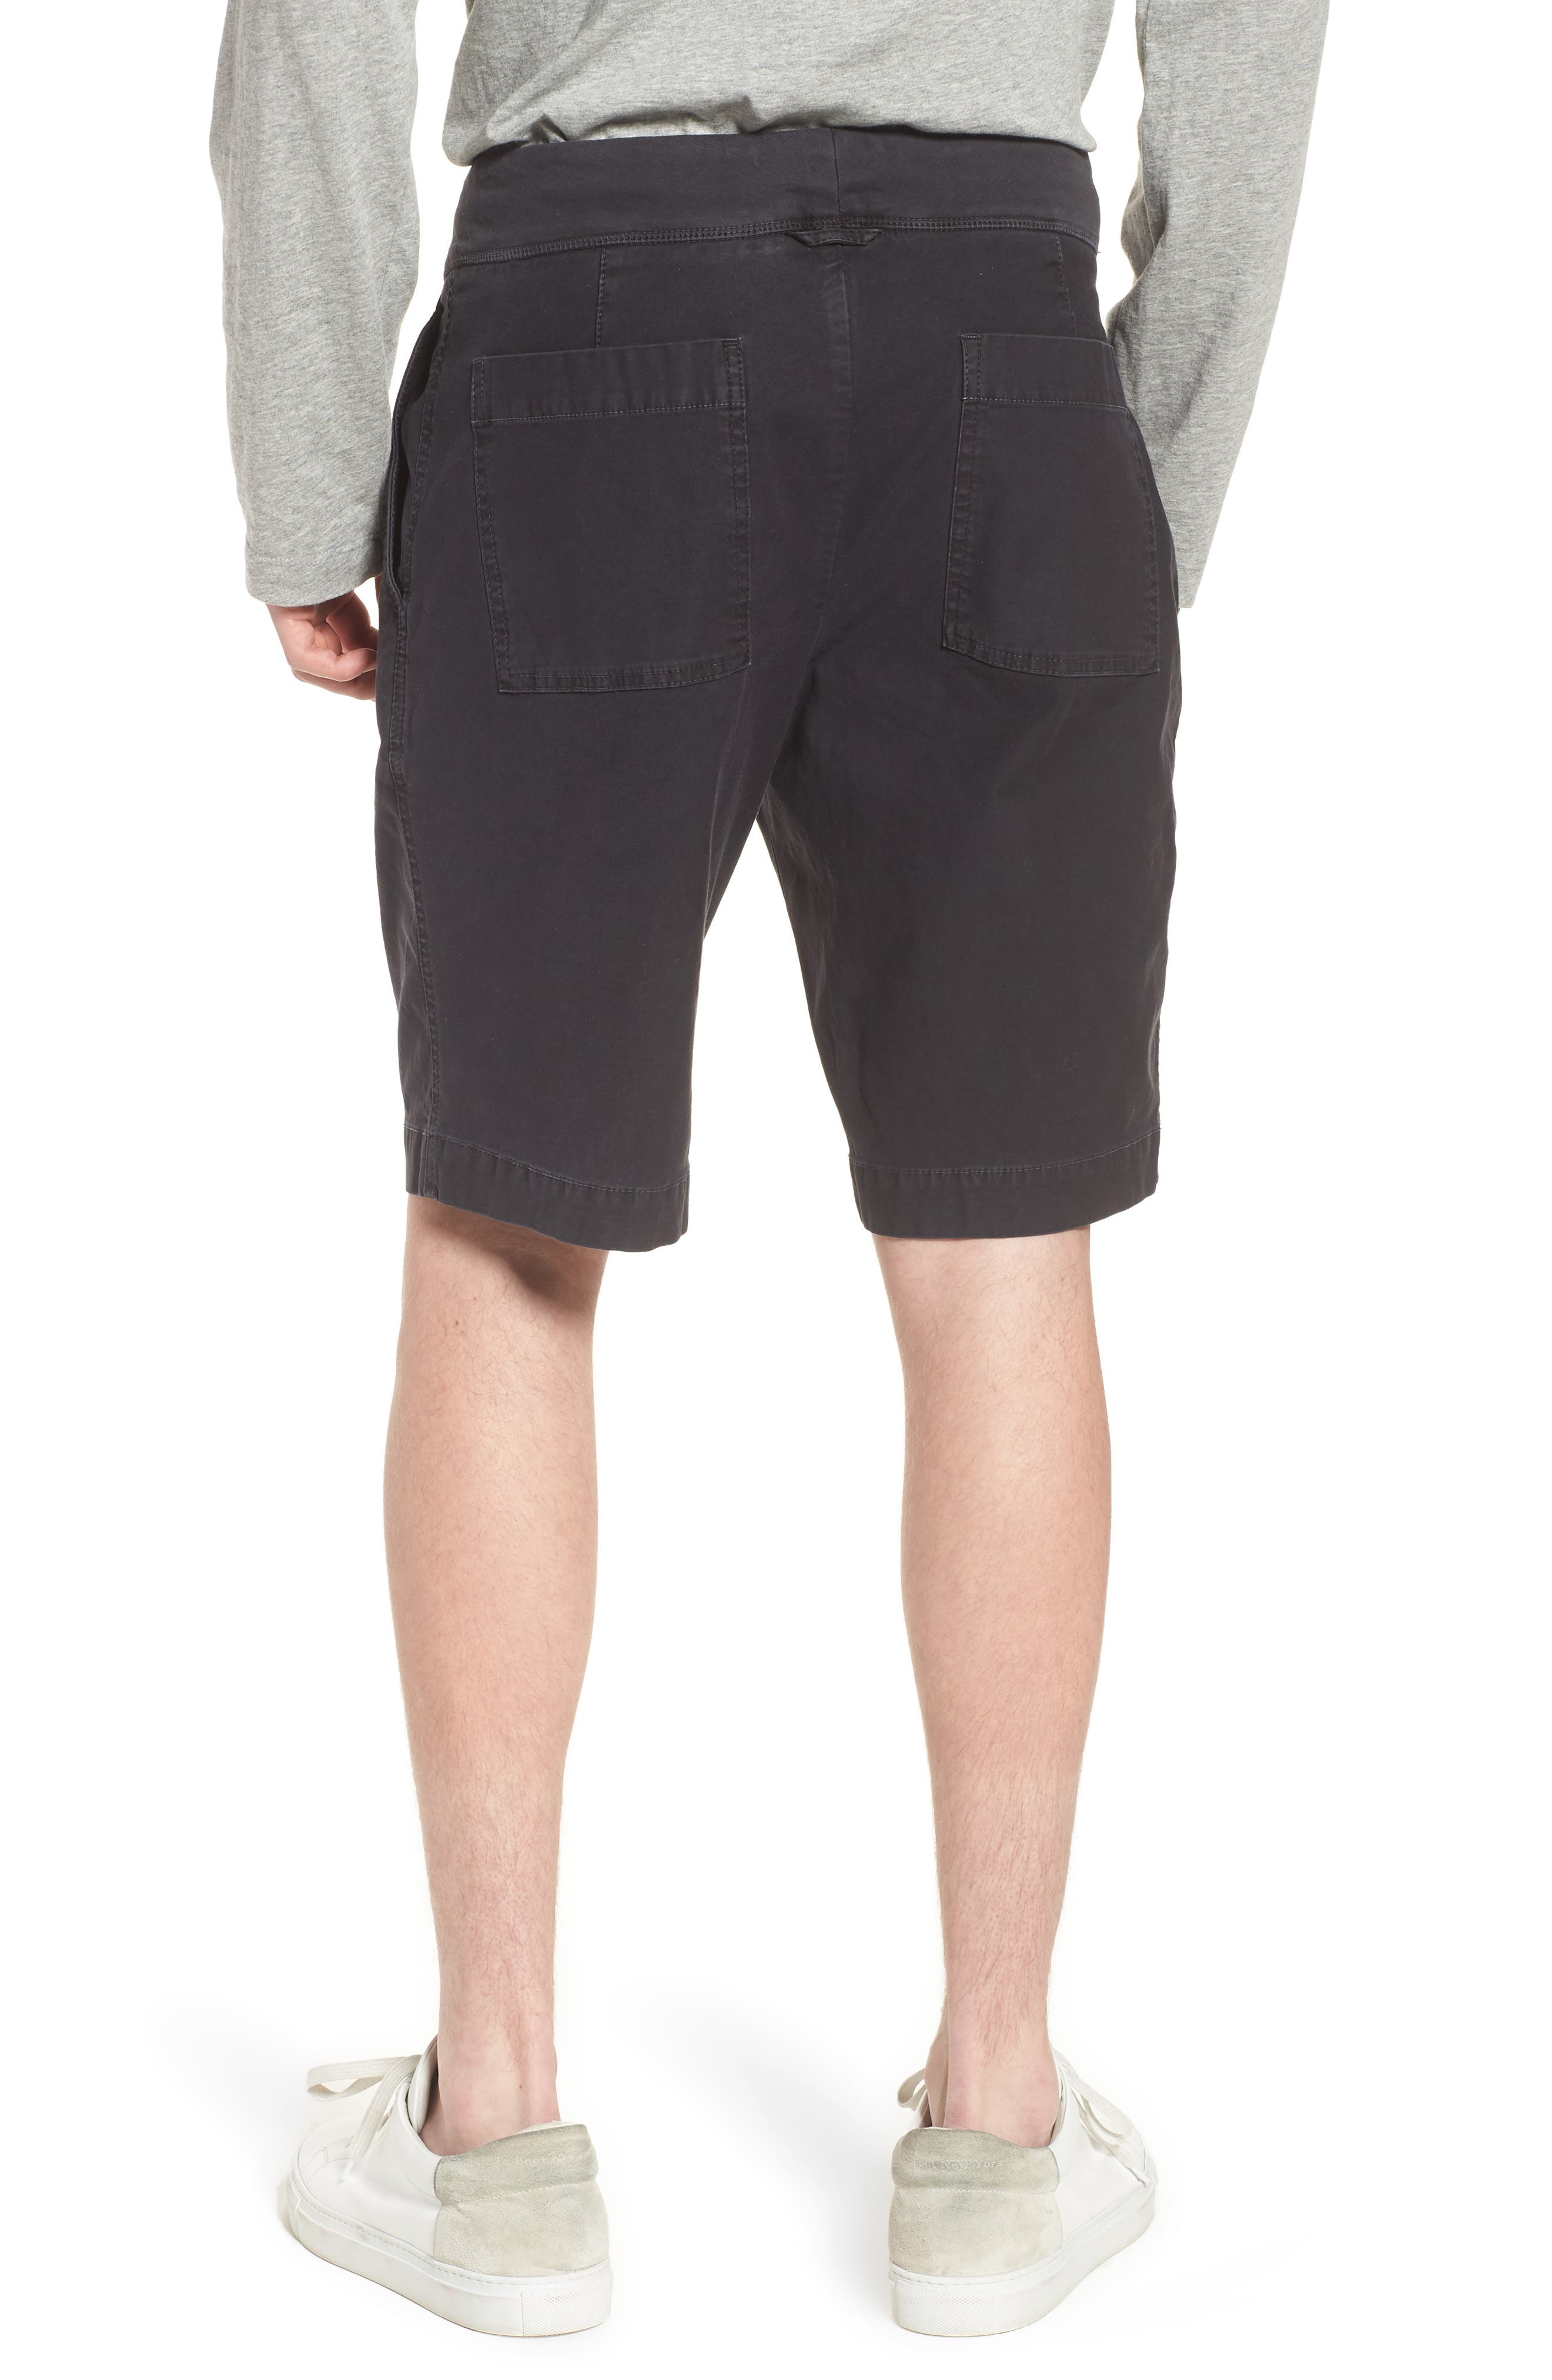 JAMES PERSE,                             Compact Stretch Cotton Shorts,                             Alternate thumbnail 2, color,                             020